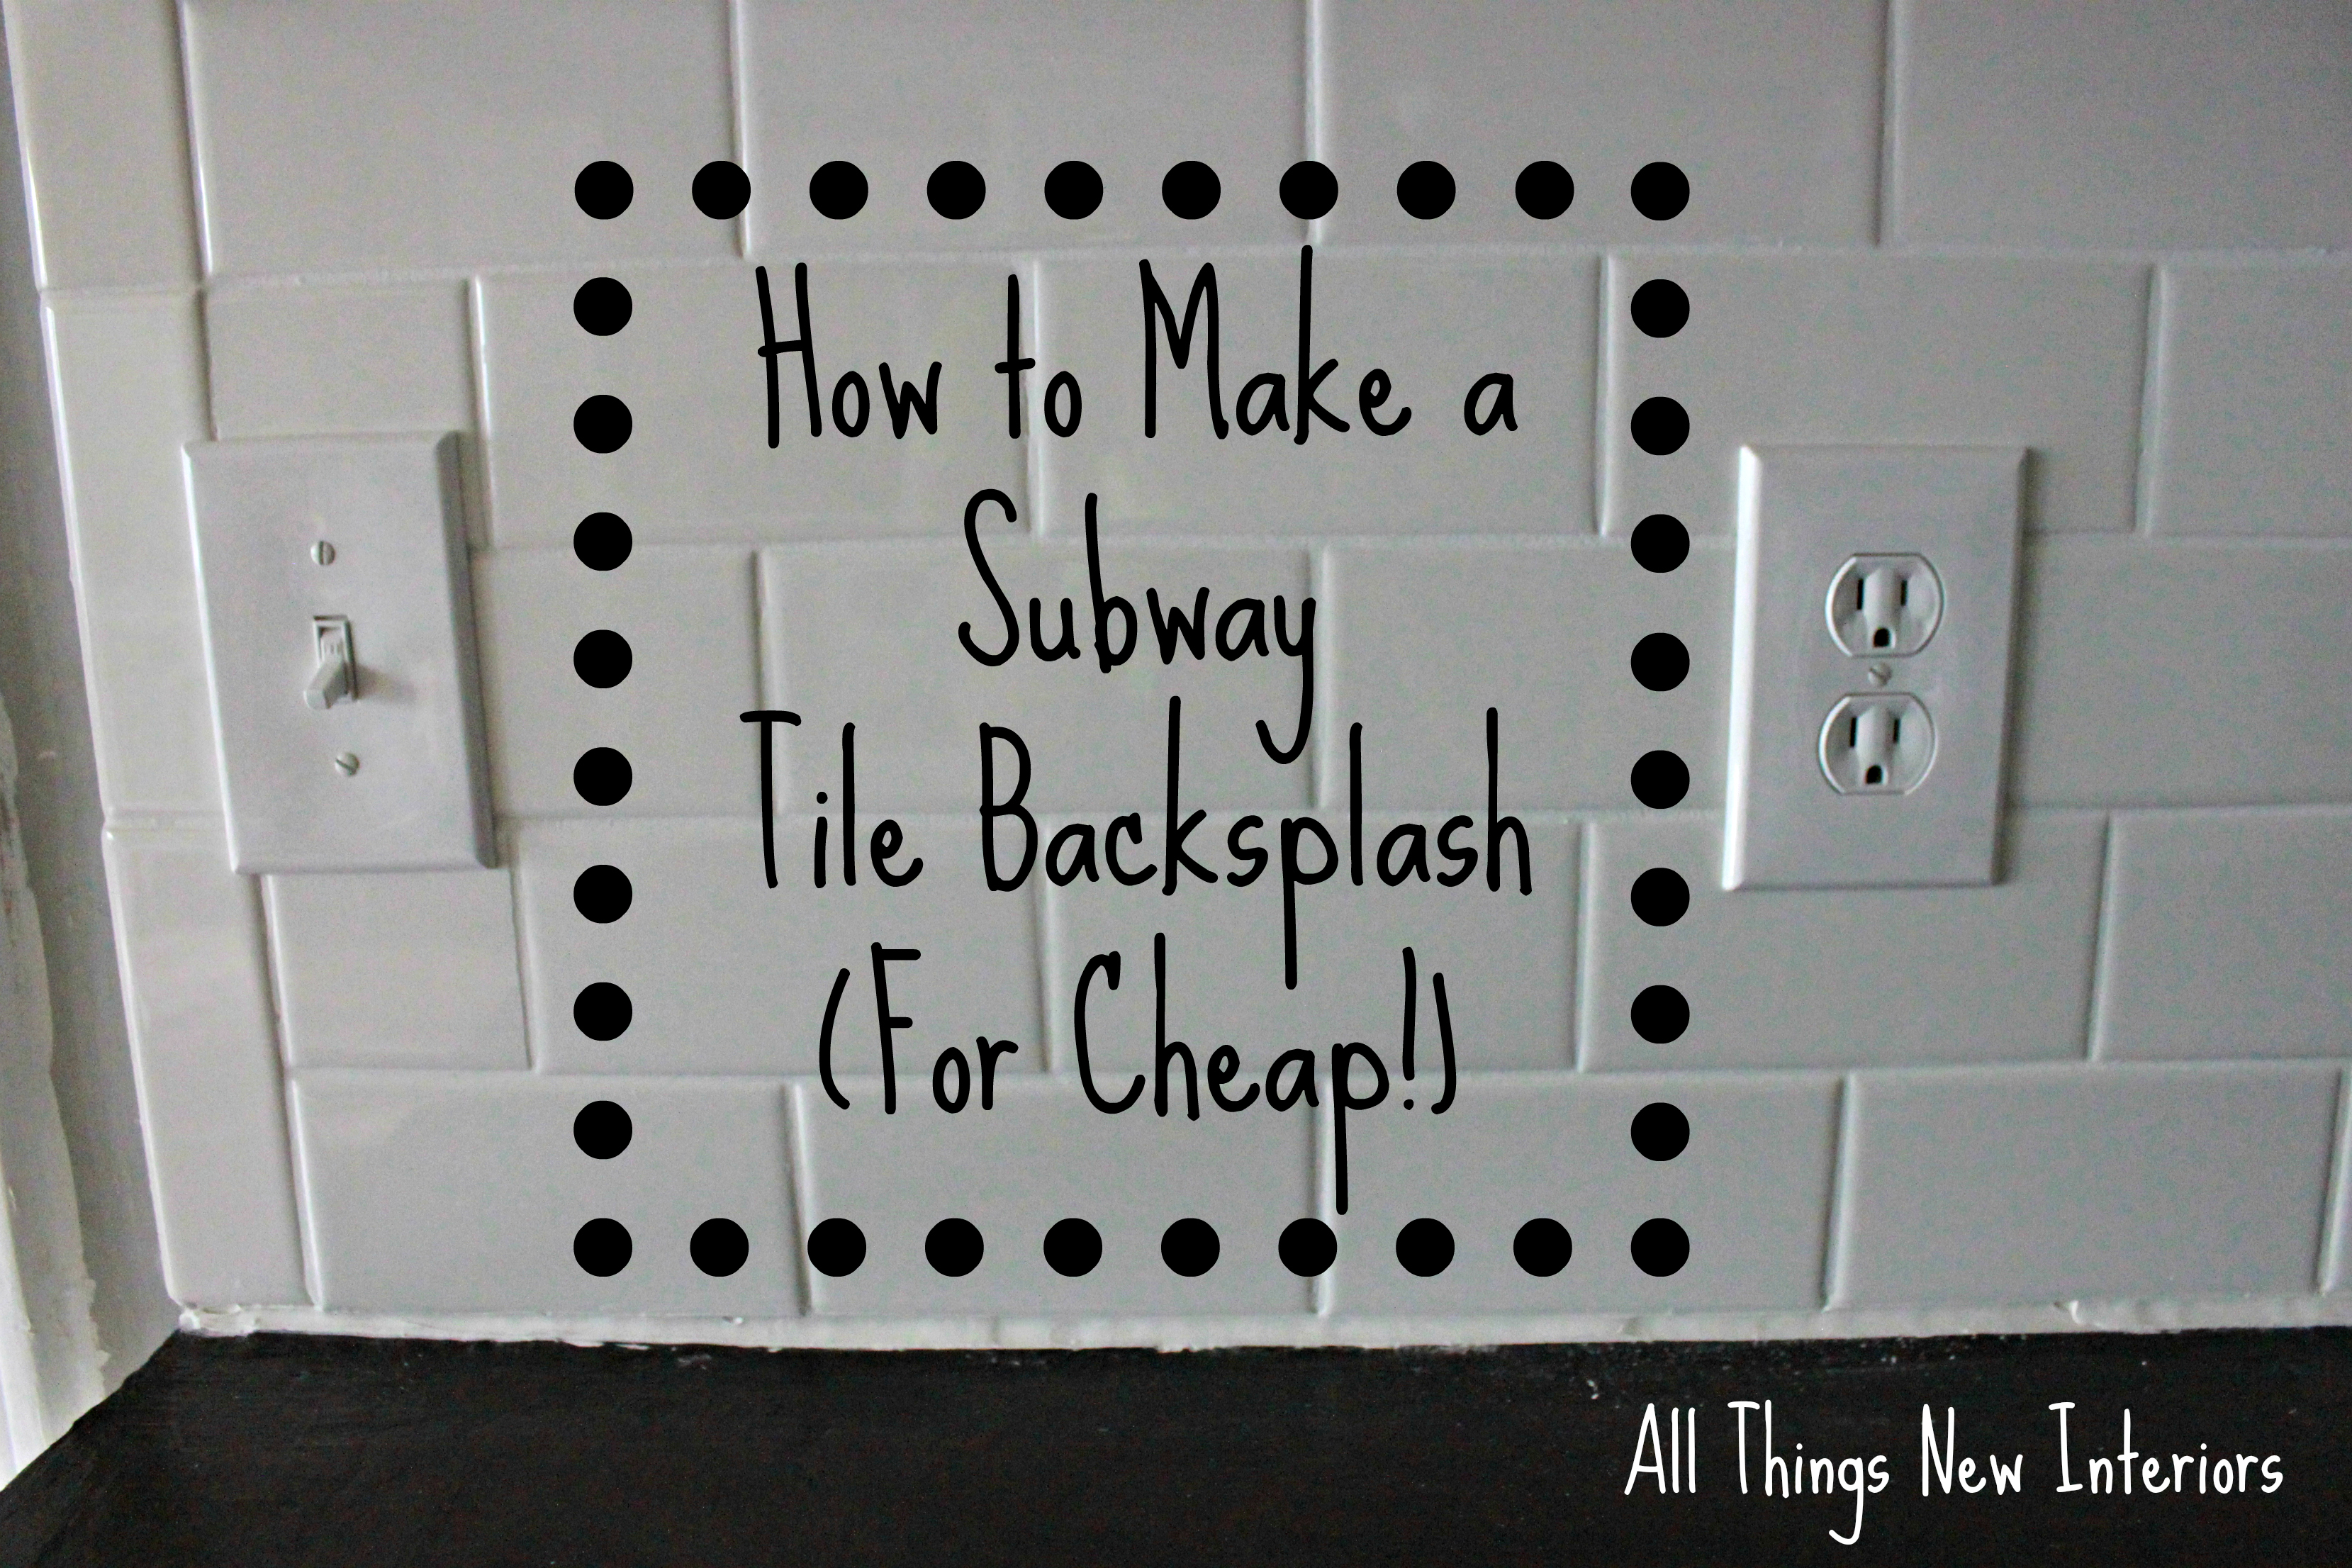 How to make a subway tile backsplash for cheap all things new img0663backsplash doublecrazyfo Choice Image